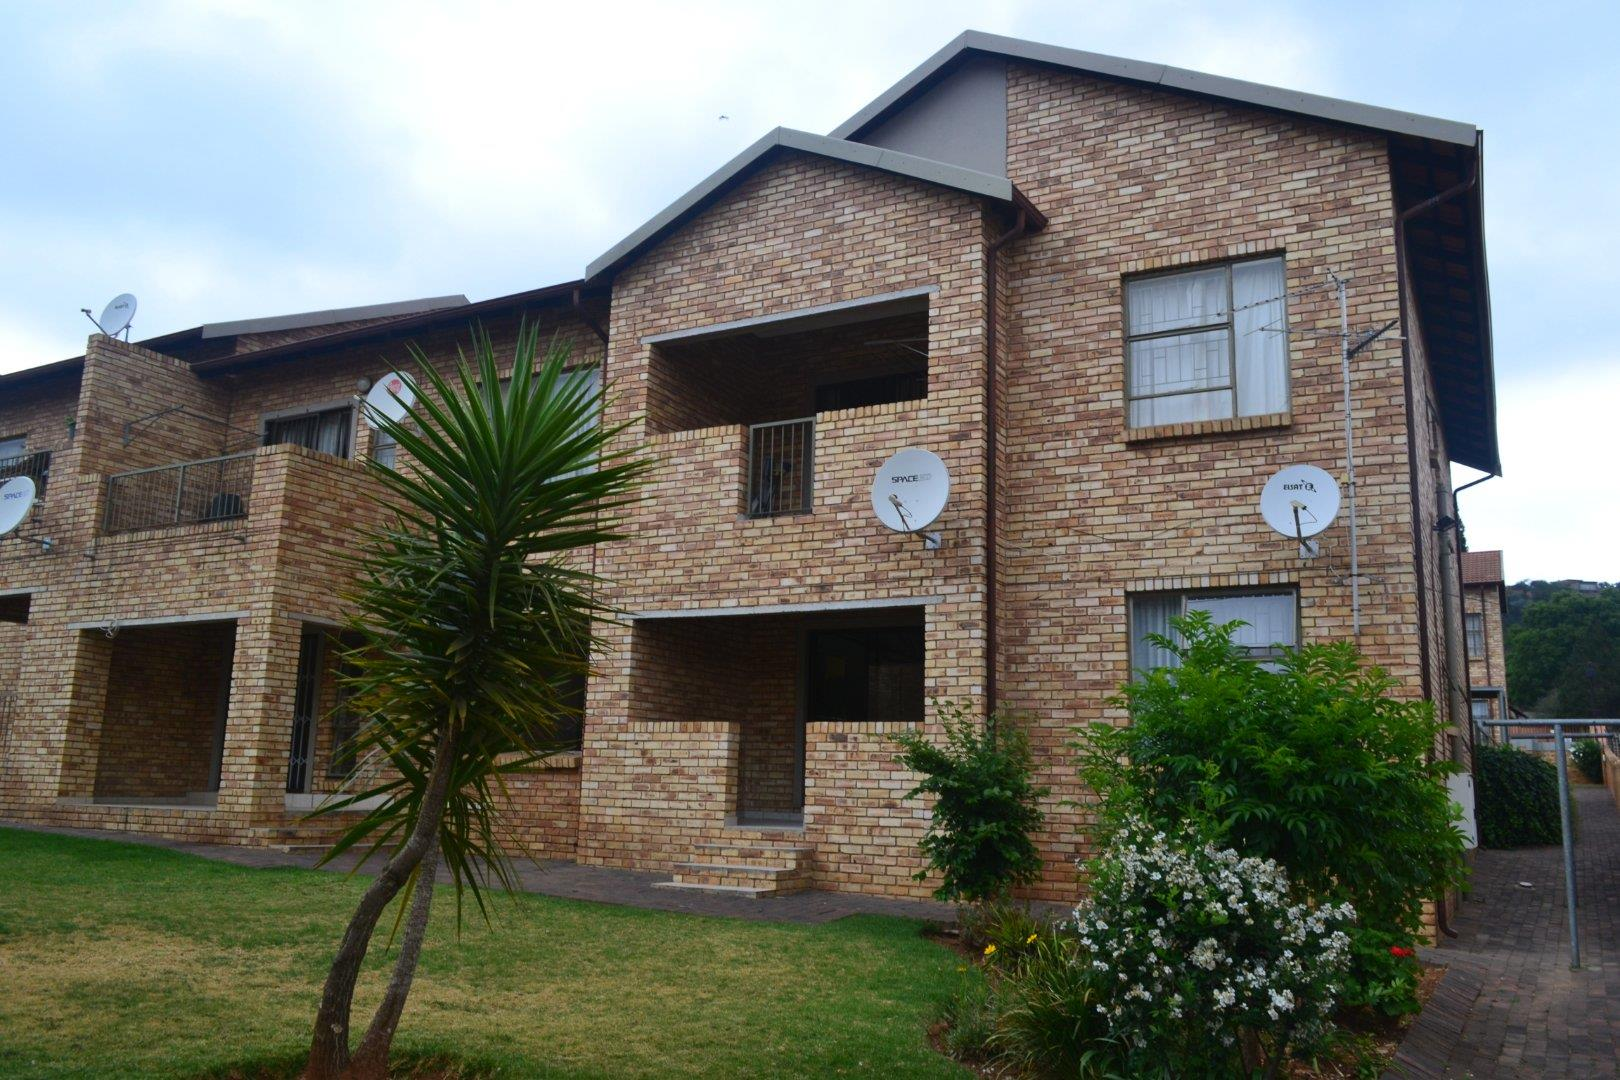 3 Bedroom Townhouse for Sale in Roodekrans, Roodepoort - Gauteng